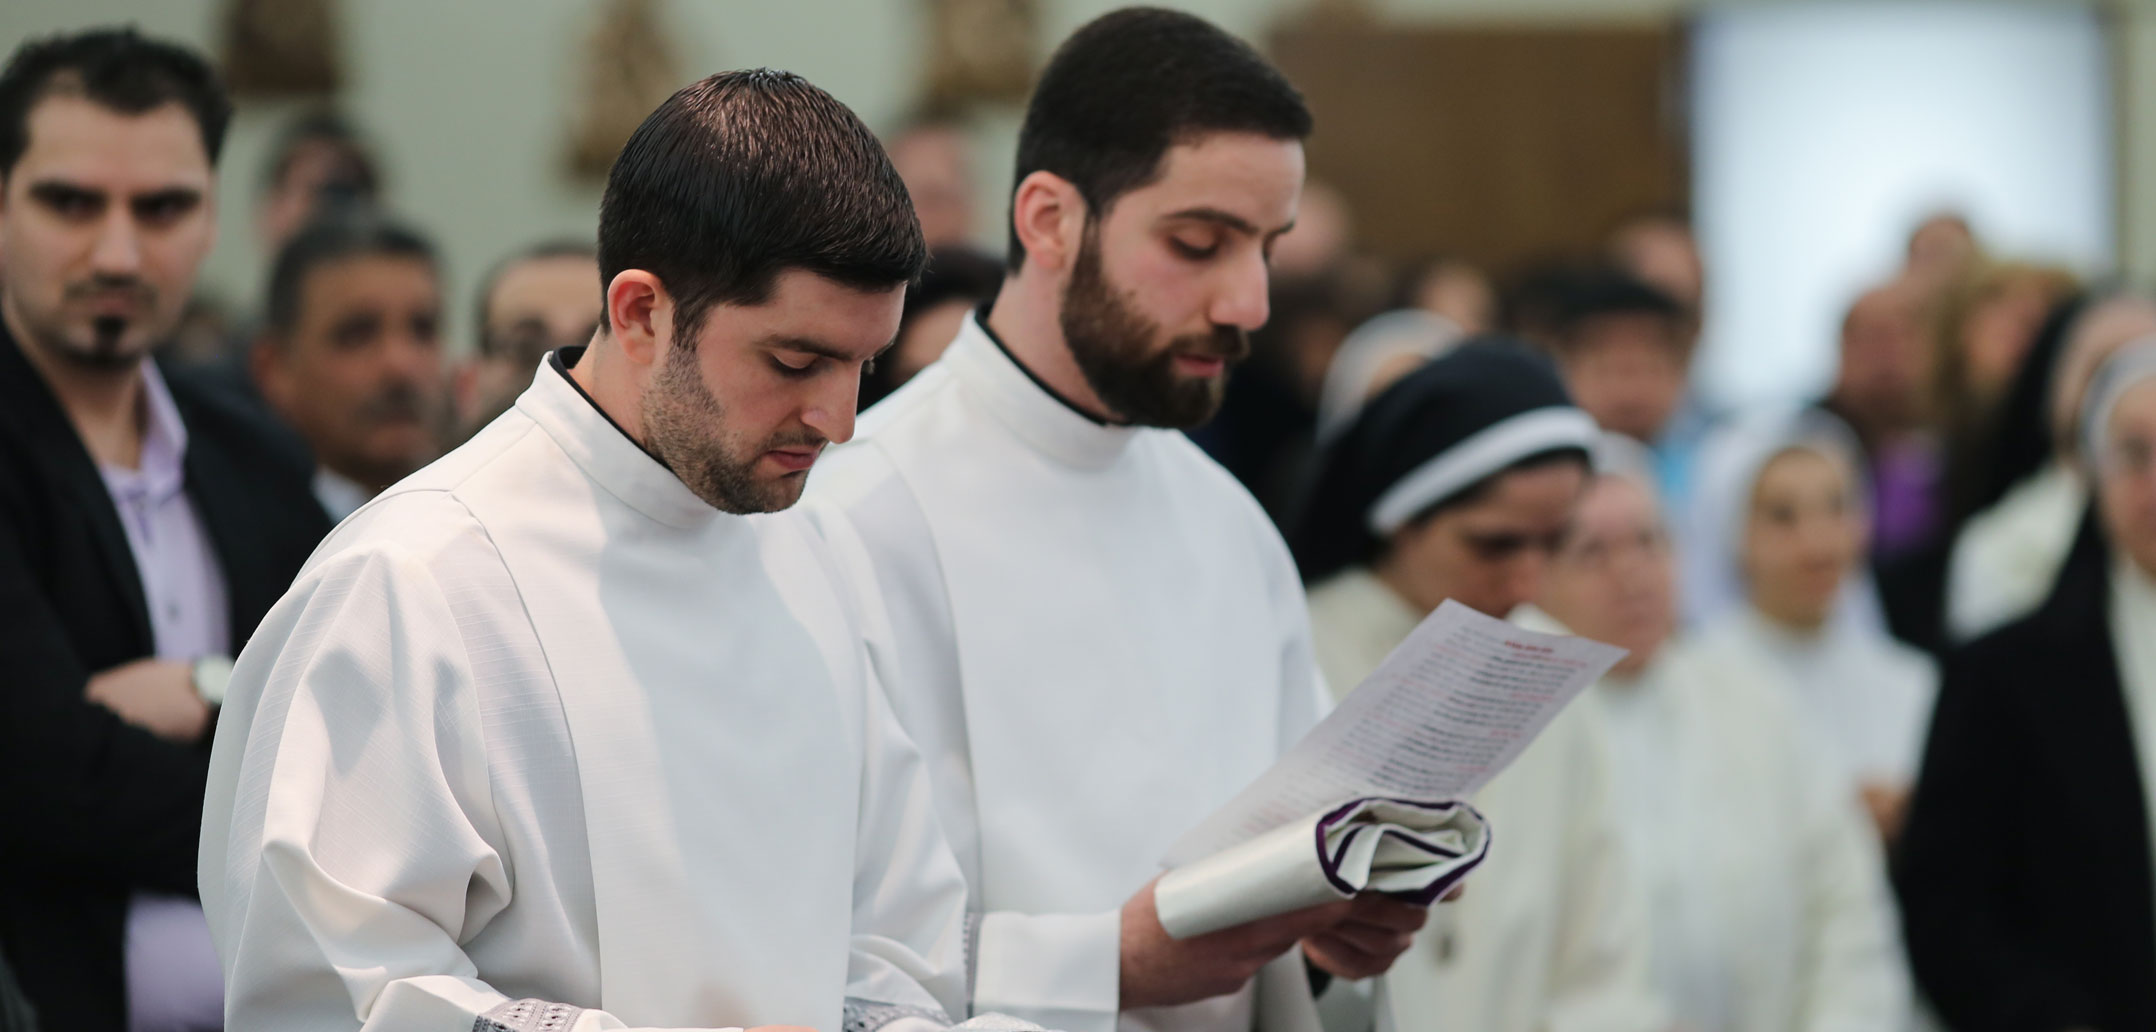 2016/12/Chaldean_Ordinations_December_2016-2.jpg